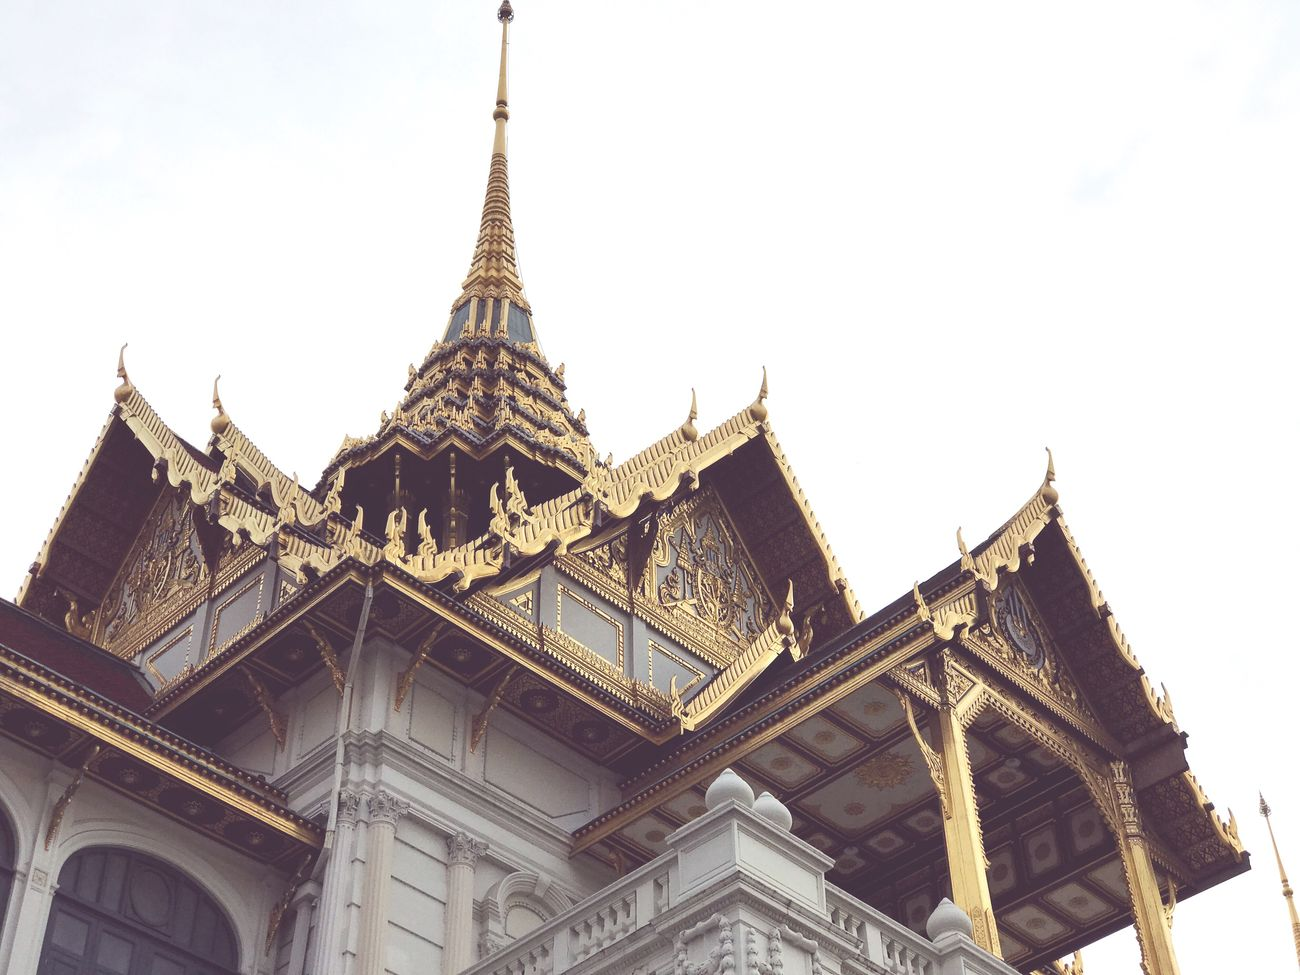 Architecture Building Exterior Built Structure Travel Destinations Travel Religion Low Angle View Spirituality Place Of Worship Sky Tourism Day Clear Sky No People Thai Style Thai Art Thai Architecture Thai Temple Thailand_allshots Thailand Grand Palace Bangkok Thailand Wat Phra Kaew Temple